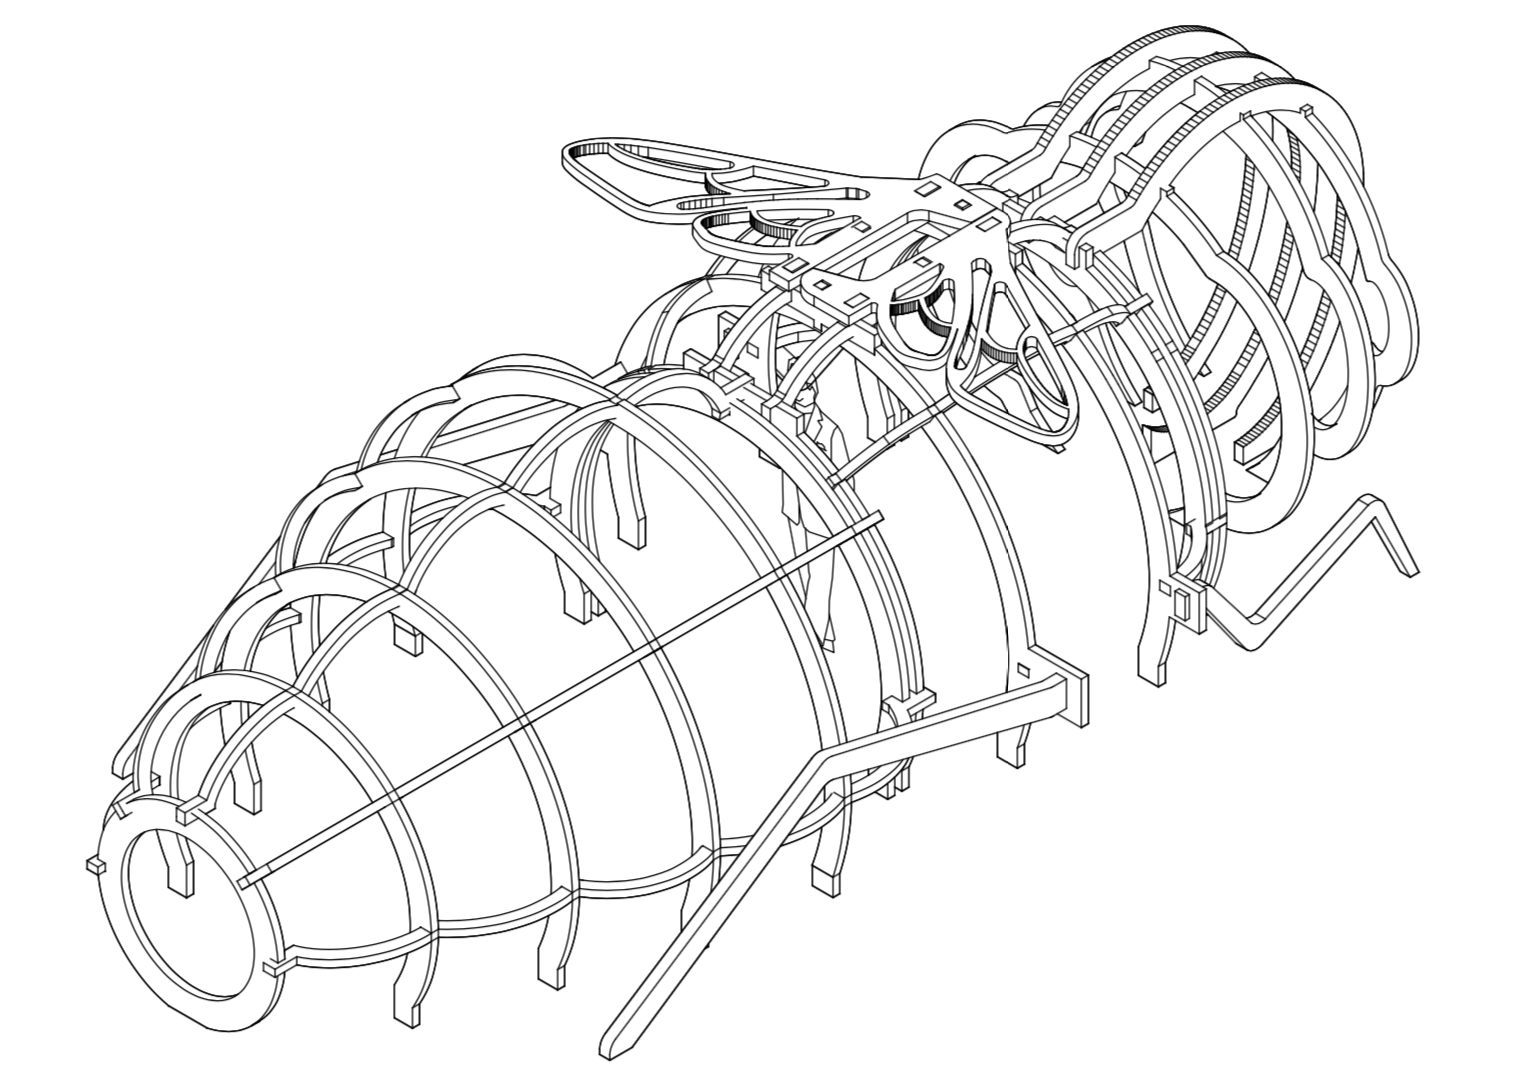 Three dimensional sketch of the Bee Friendly prototype